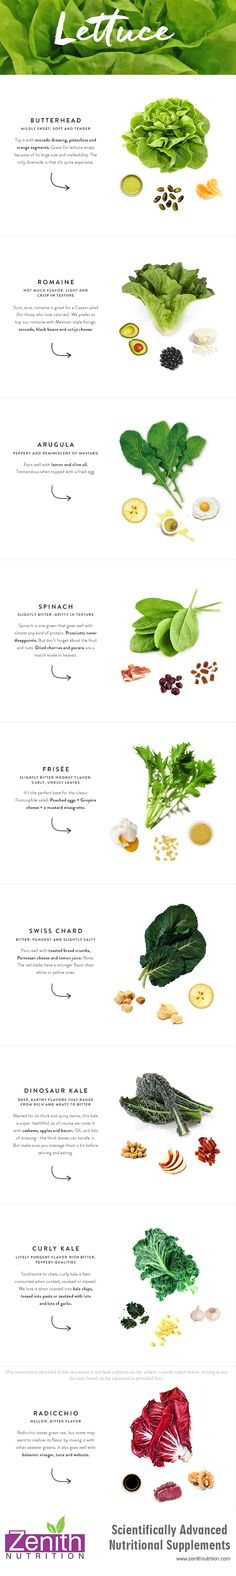 Lettuce - Butte head, Romaine, Arugula, Spinach, Frisee, Swiss Chard, Dinosaur kale, Curly Kale, Radicchio. Best supplements from Zenith Nutrition. Health Supplements. Nutritional Supplements. Health Infographics